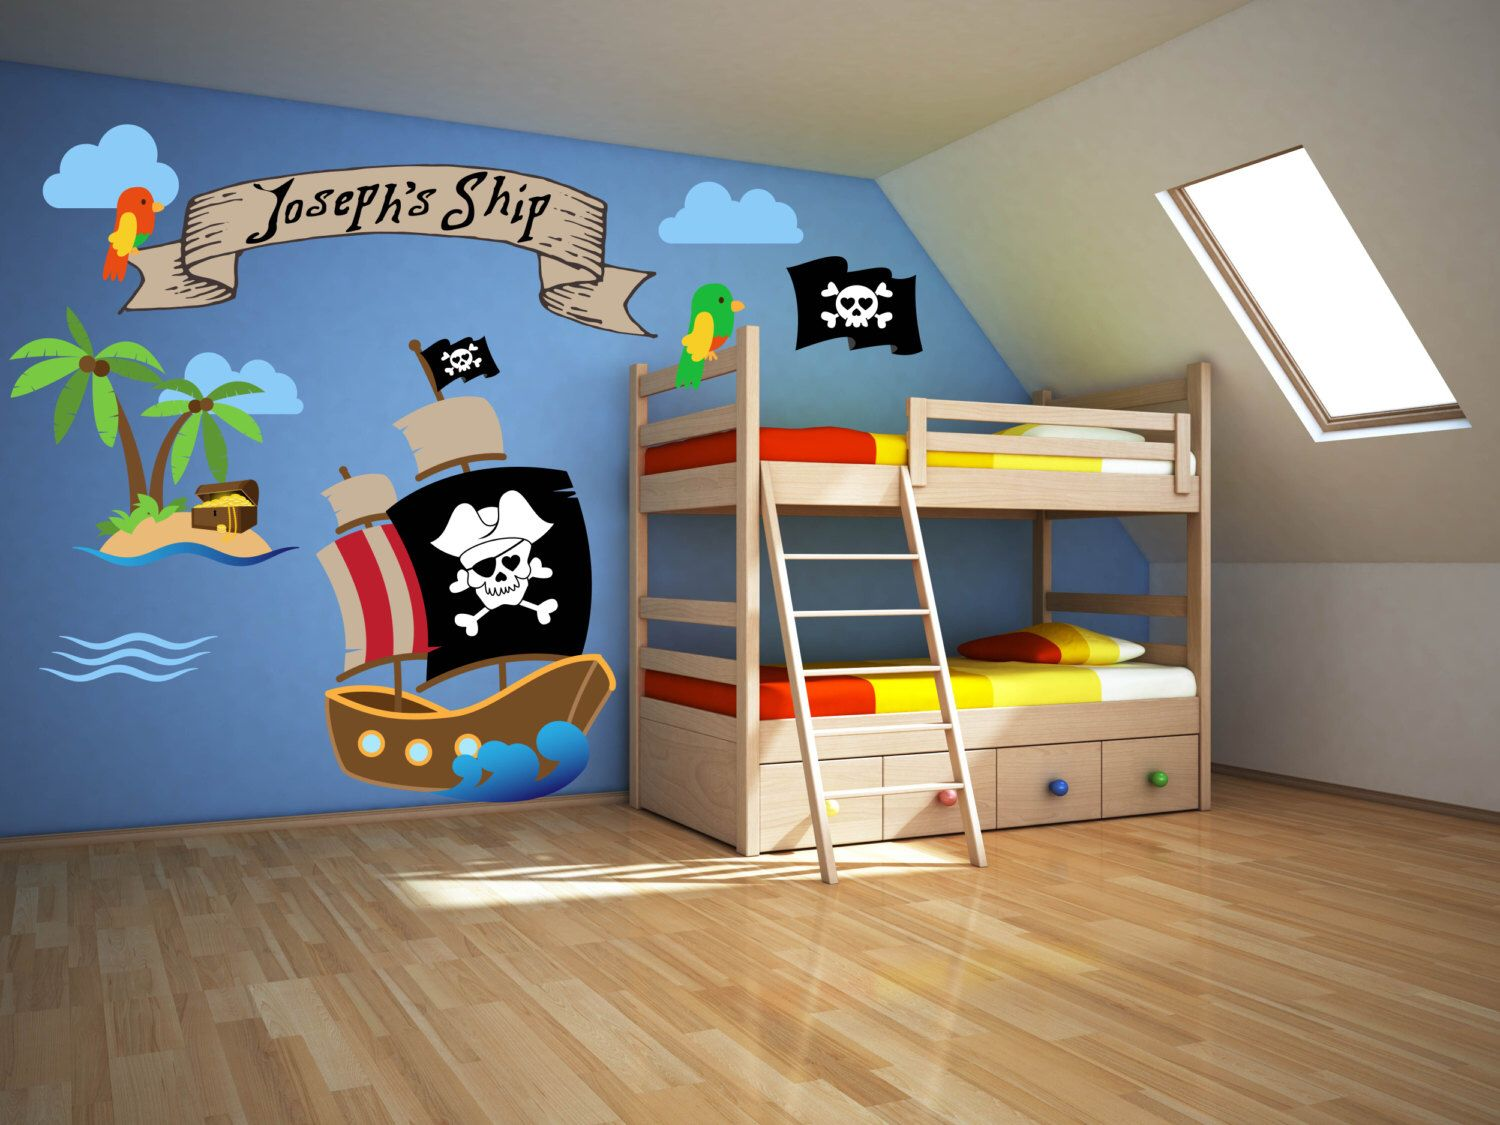 Pirate Room Decor   Pirate Wall Decals   Pirate Theme Decor   Pirate Wall  Art